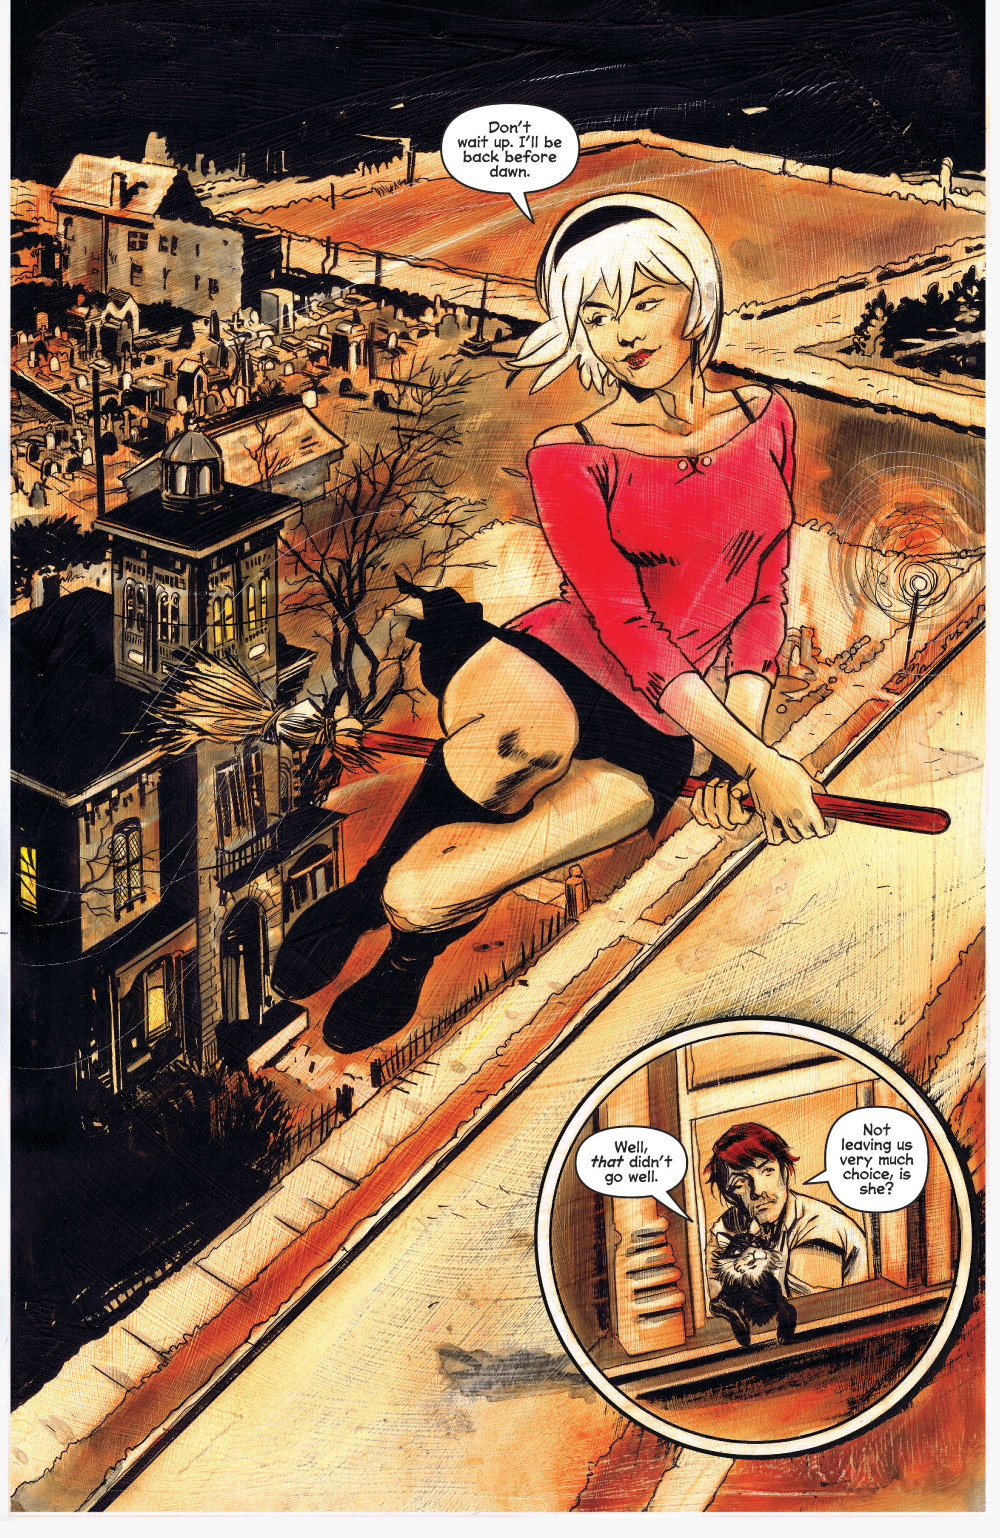 Chilling Adventures Of Sabrina 8 Raises A Whole Lotta